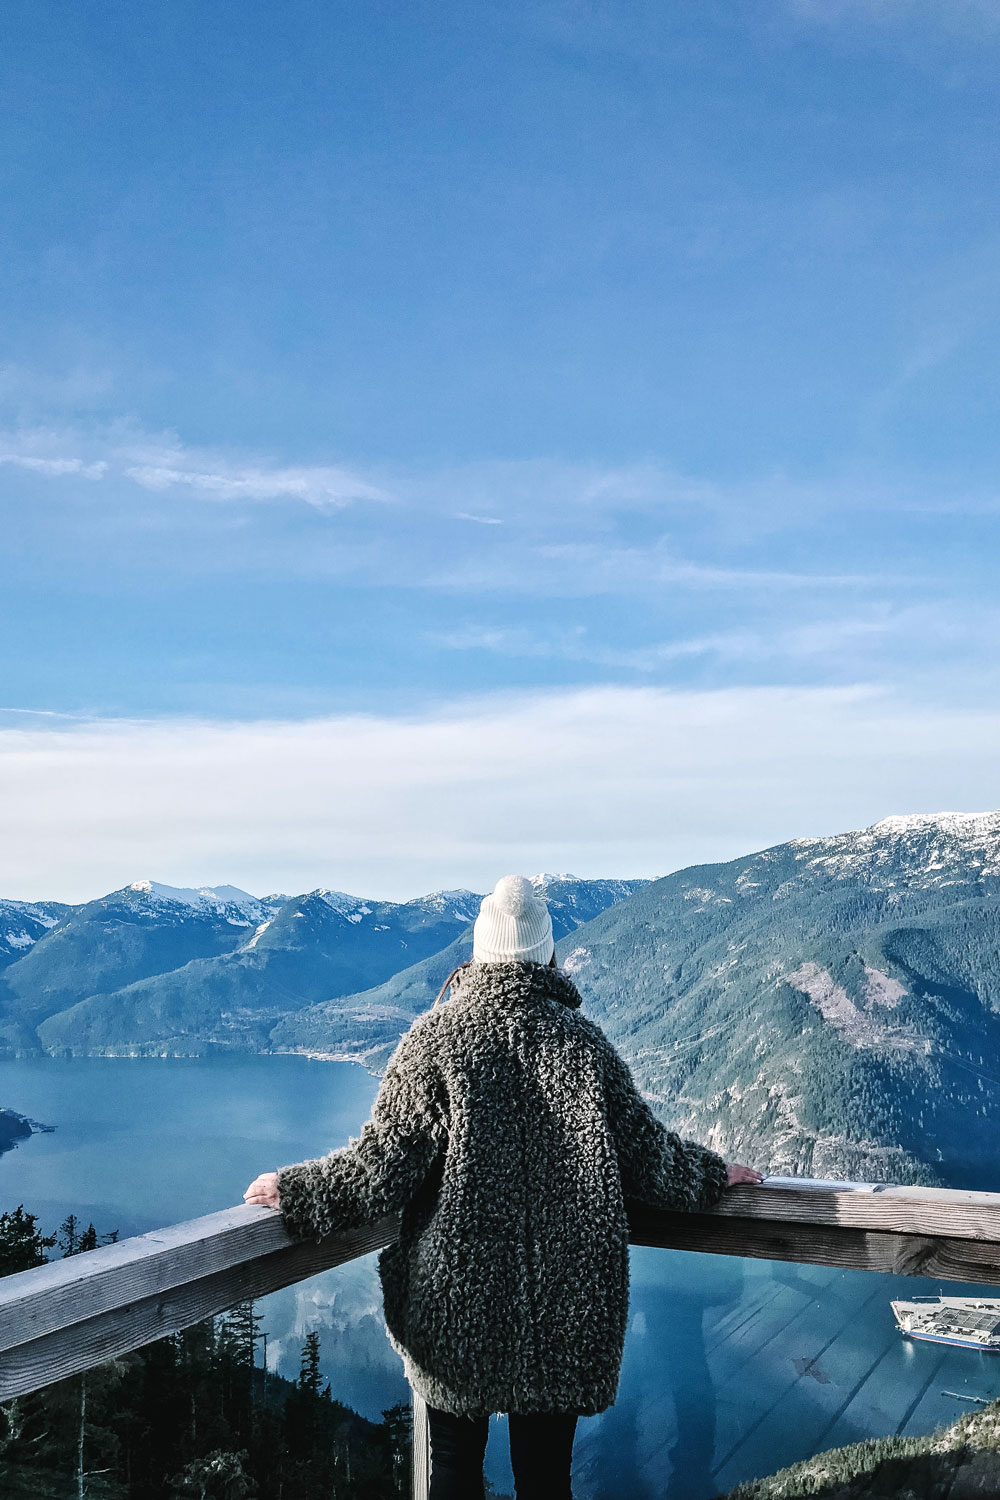 Sea to sky gondola squamish bc by To Vogue or Bust